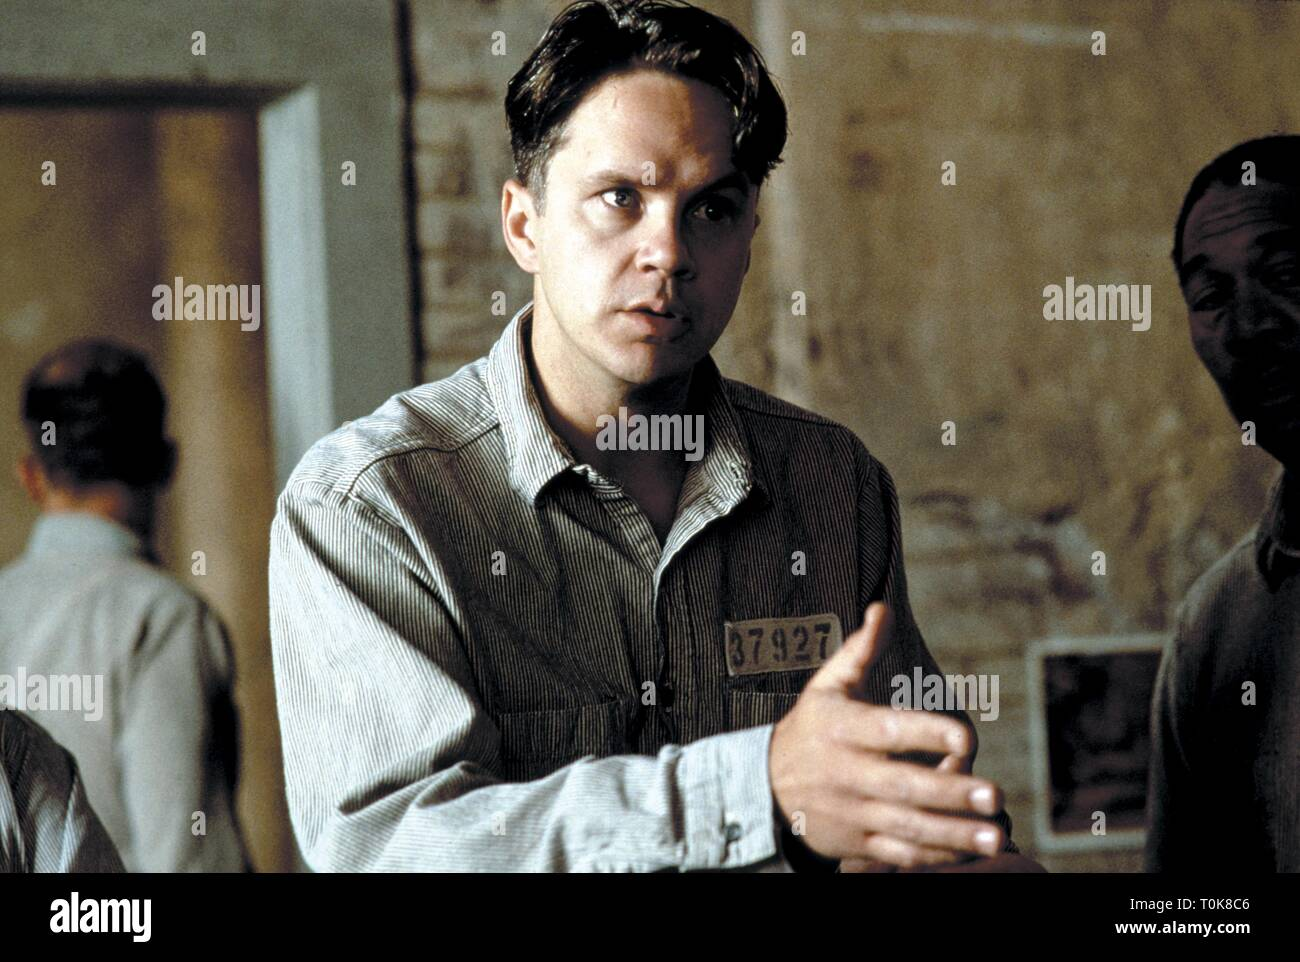 TIM ROBBINS, THE SHAWSHANK REDEMPTION, 1994 - Stock Image